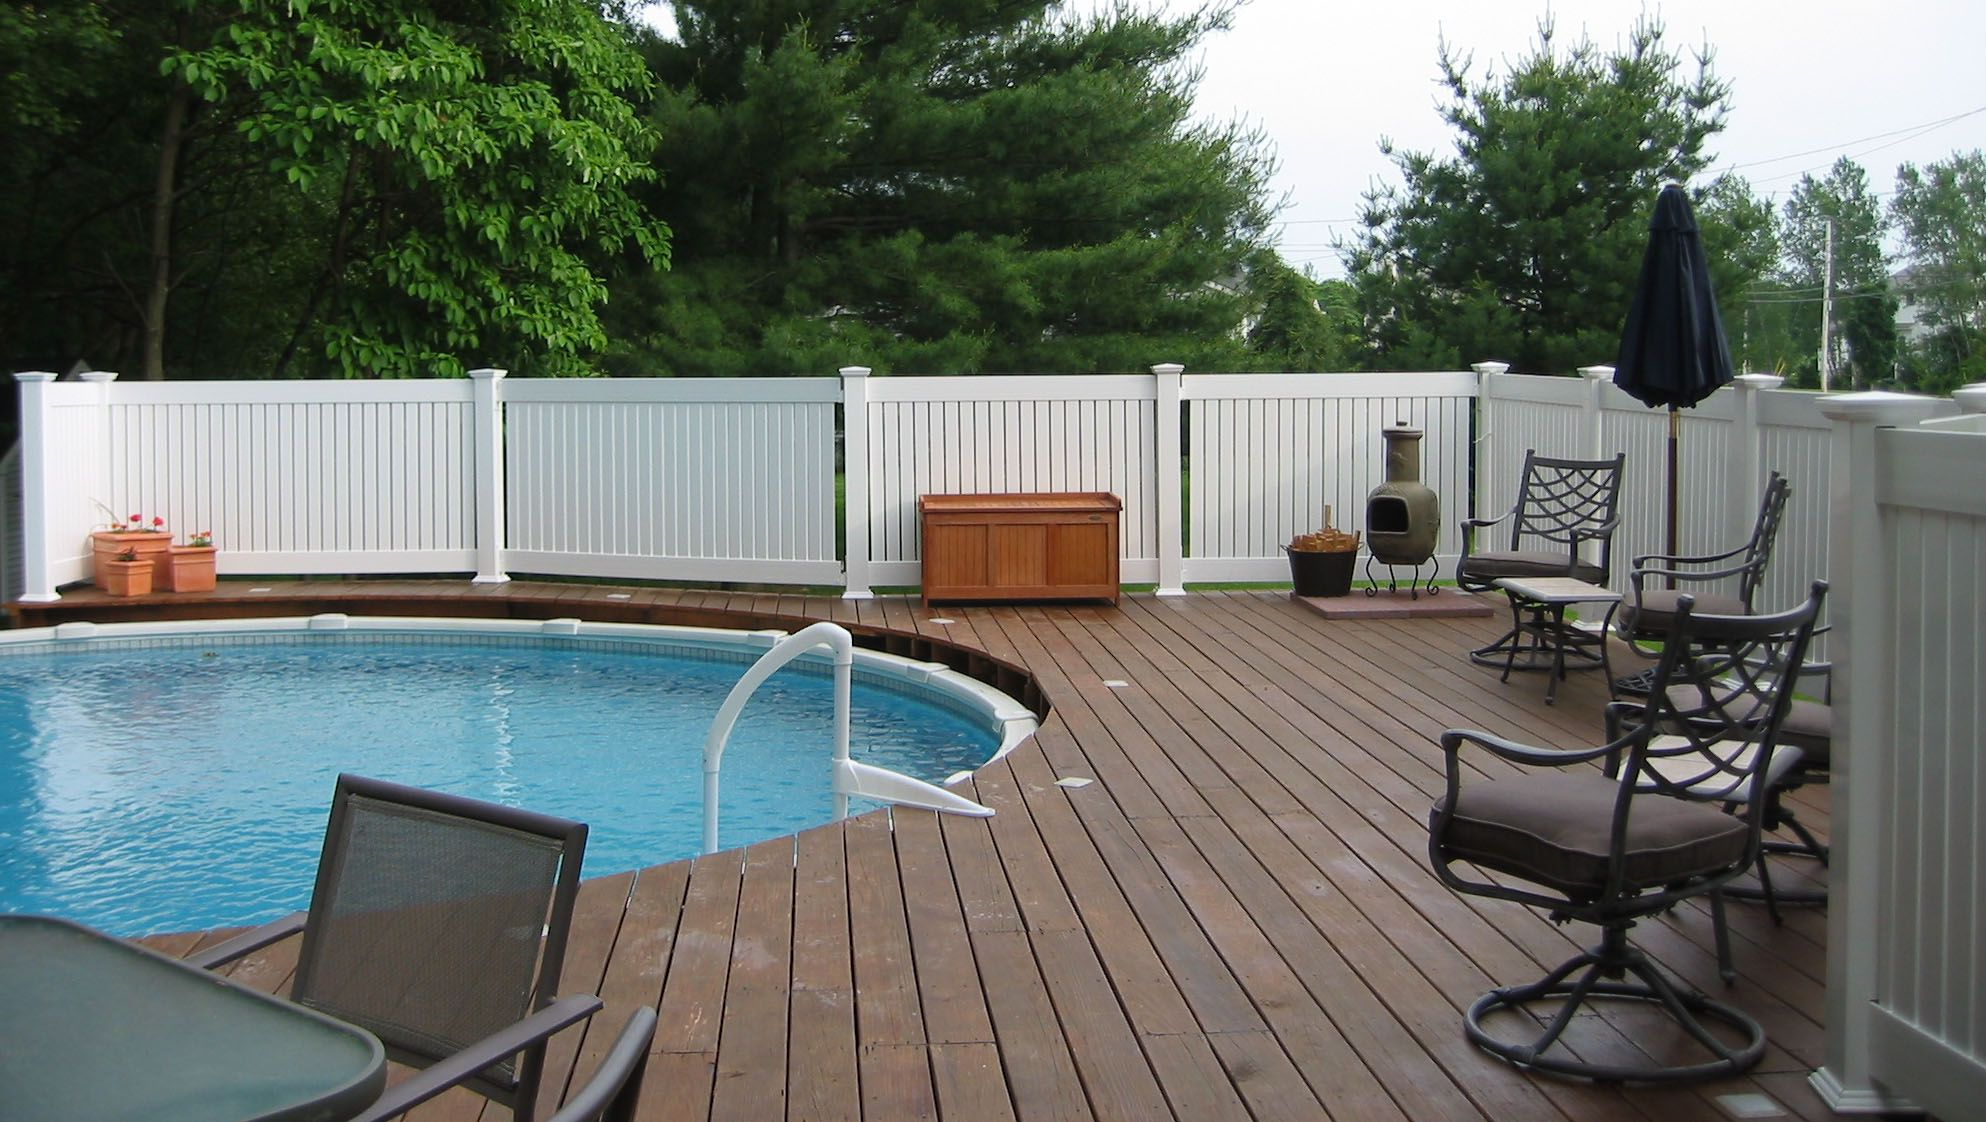 Our Beautiful Vinyl Fences Are Perfect For Outdoor Pool Areas